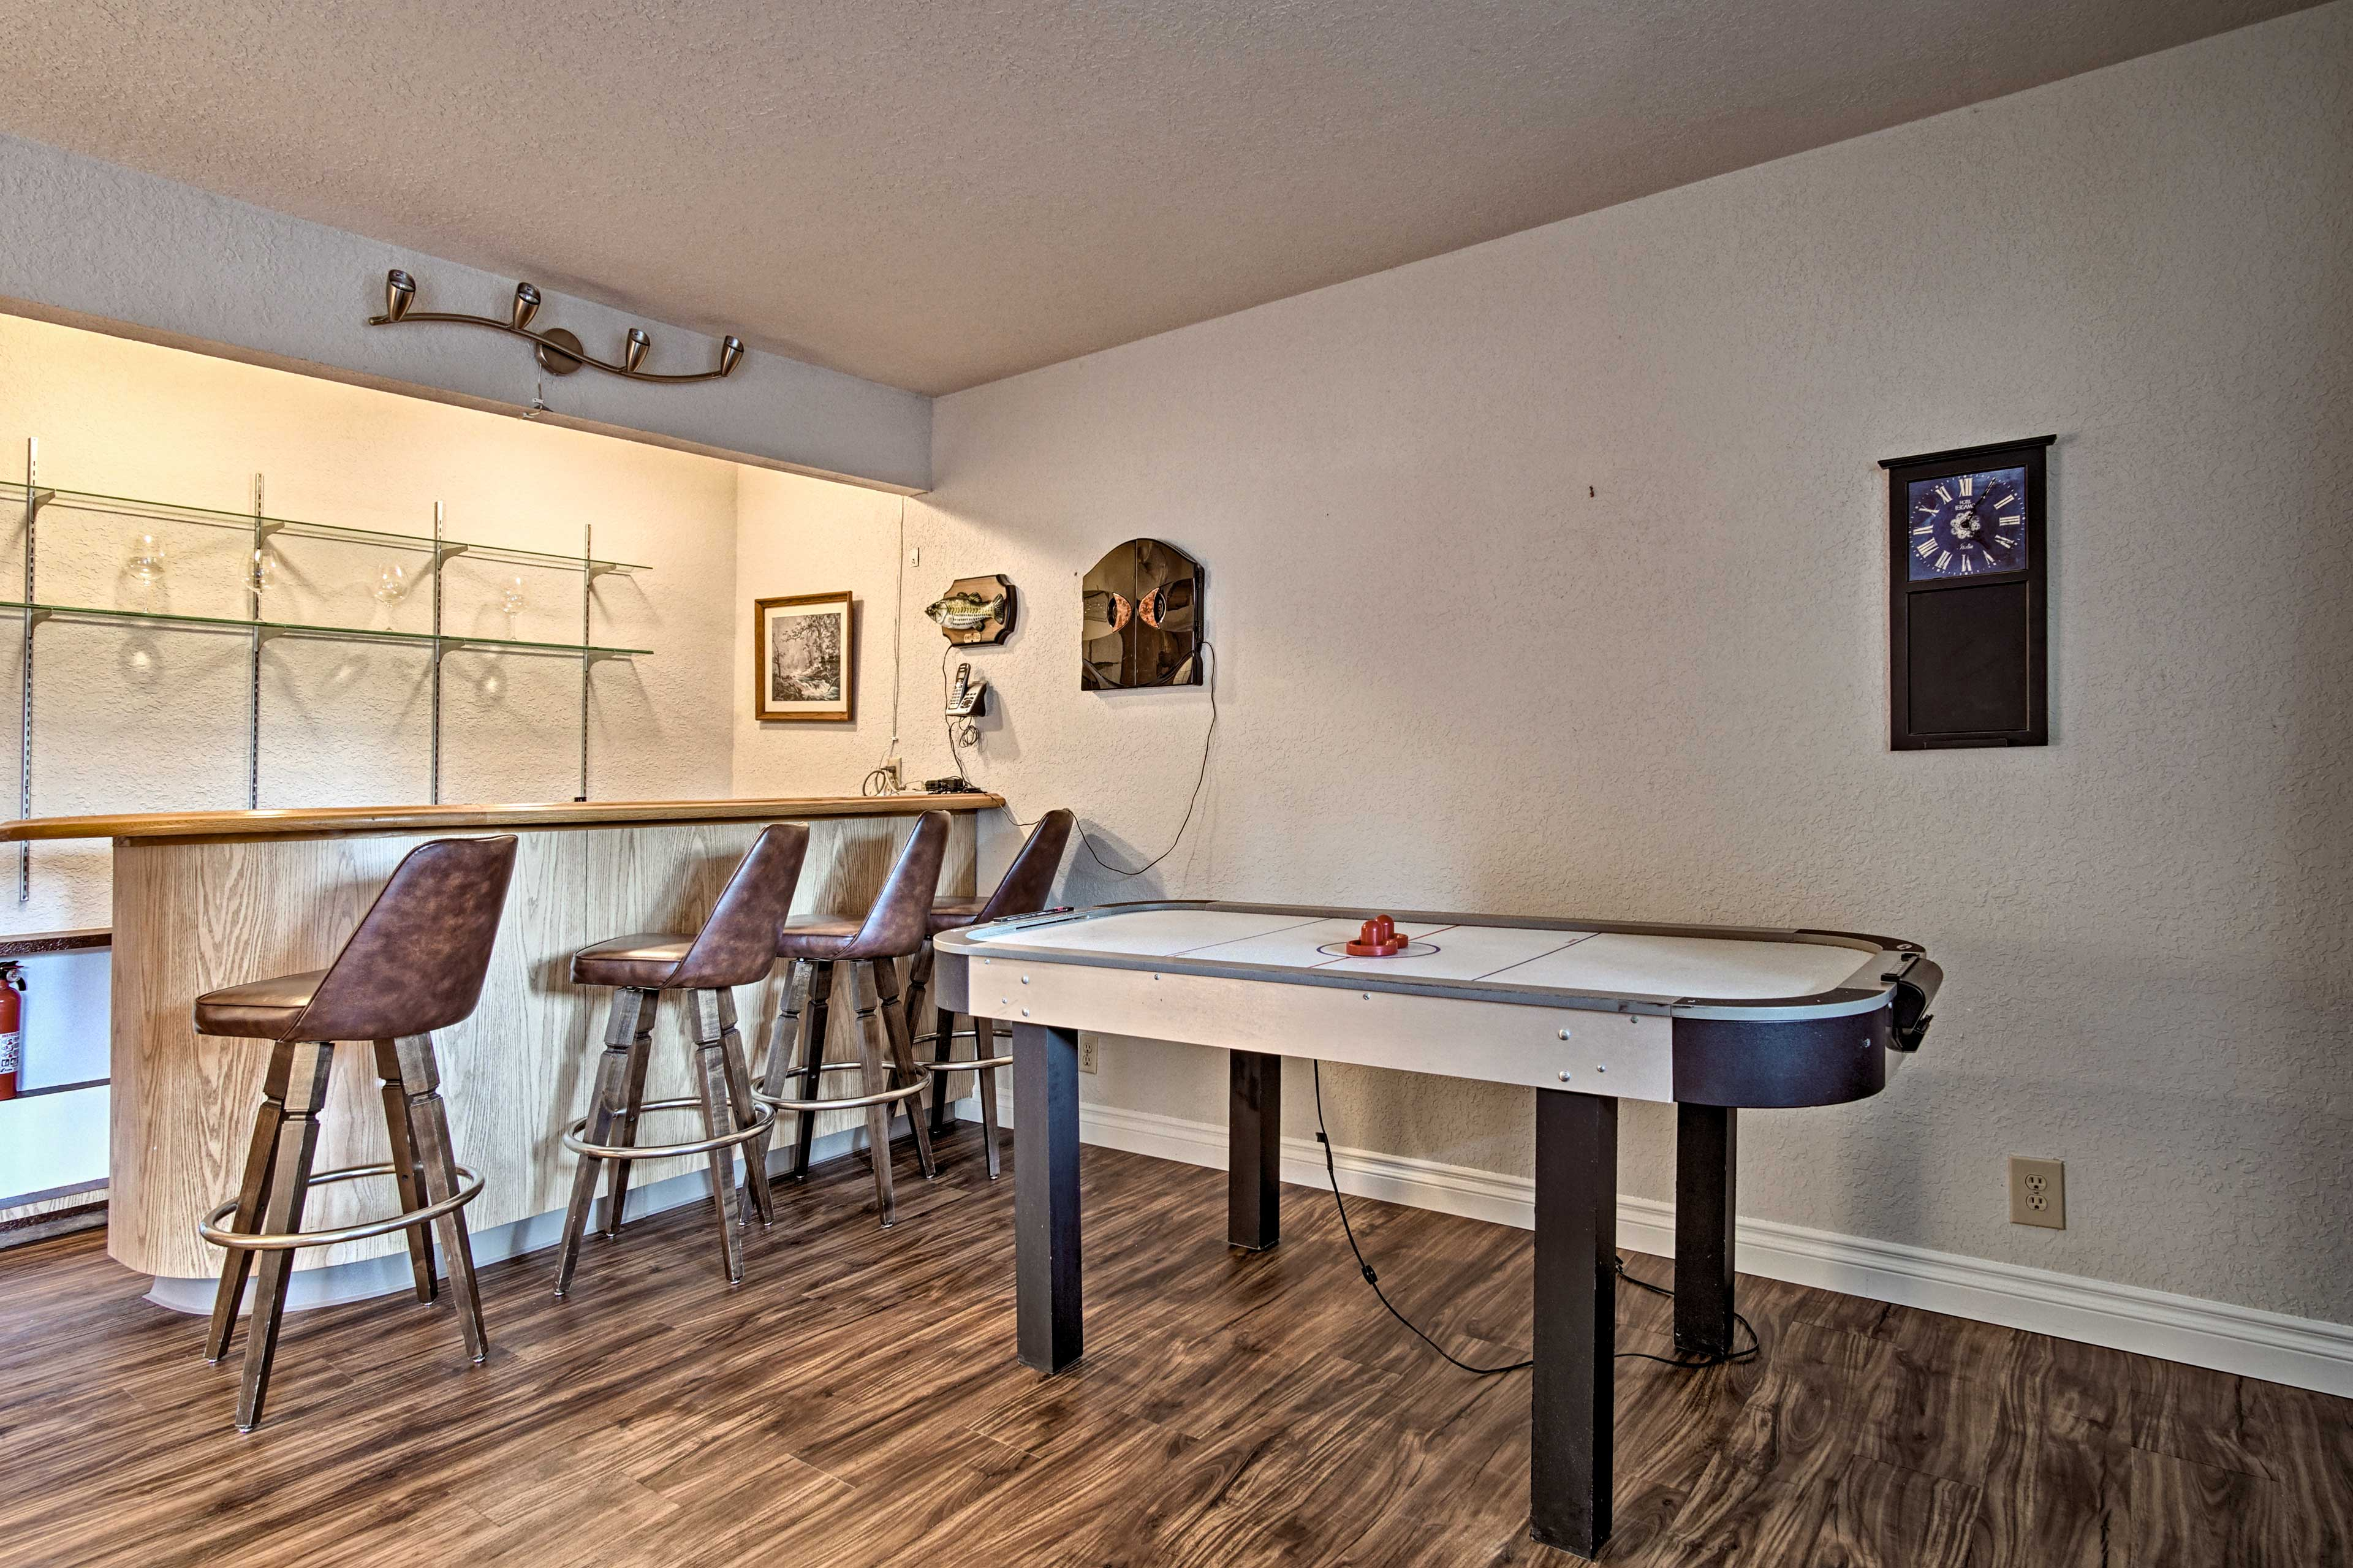 Mix a nightcap beverage at the wet bar and challenge your friends to a game!